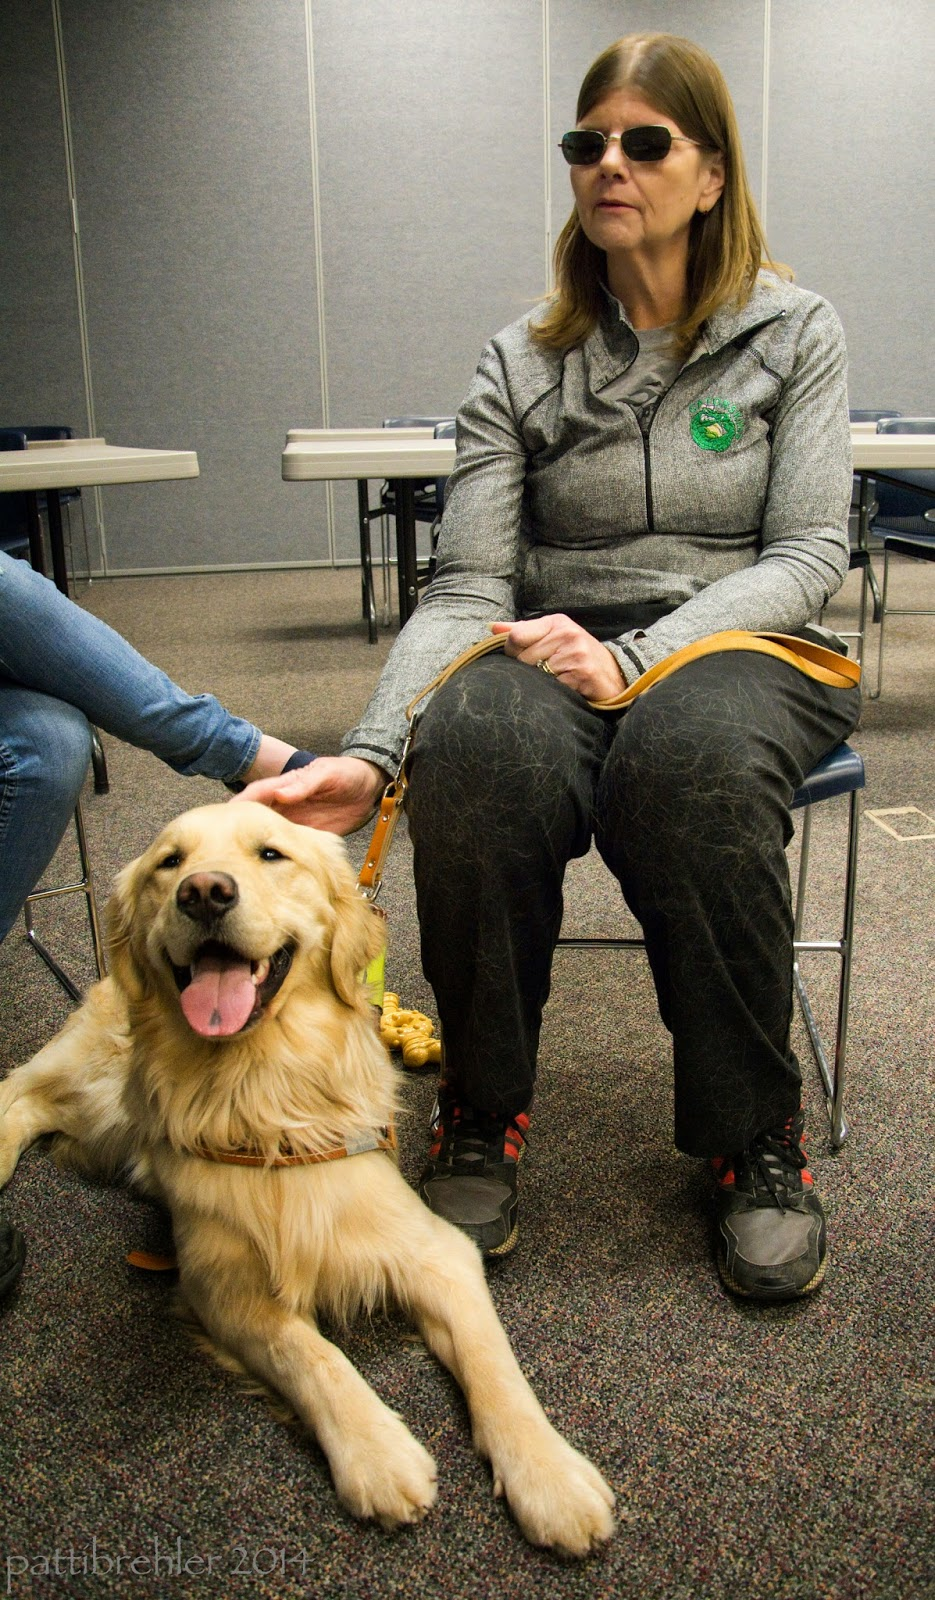 A woman wearing sunglasses is sitting on a chair facing the camera. She is wearing a gray long sleeved shirt and black pants (covered with golden retriever hair!). She is hold a leash in her left hand and touching the head of a golden retriever with her right hand. The golden is lying on the floor at her feet just to her right. He is wearing a Leader Dogs guidng harness and is looking at the camera with his tongue out and a big smile.